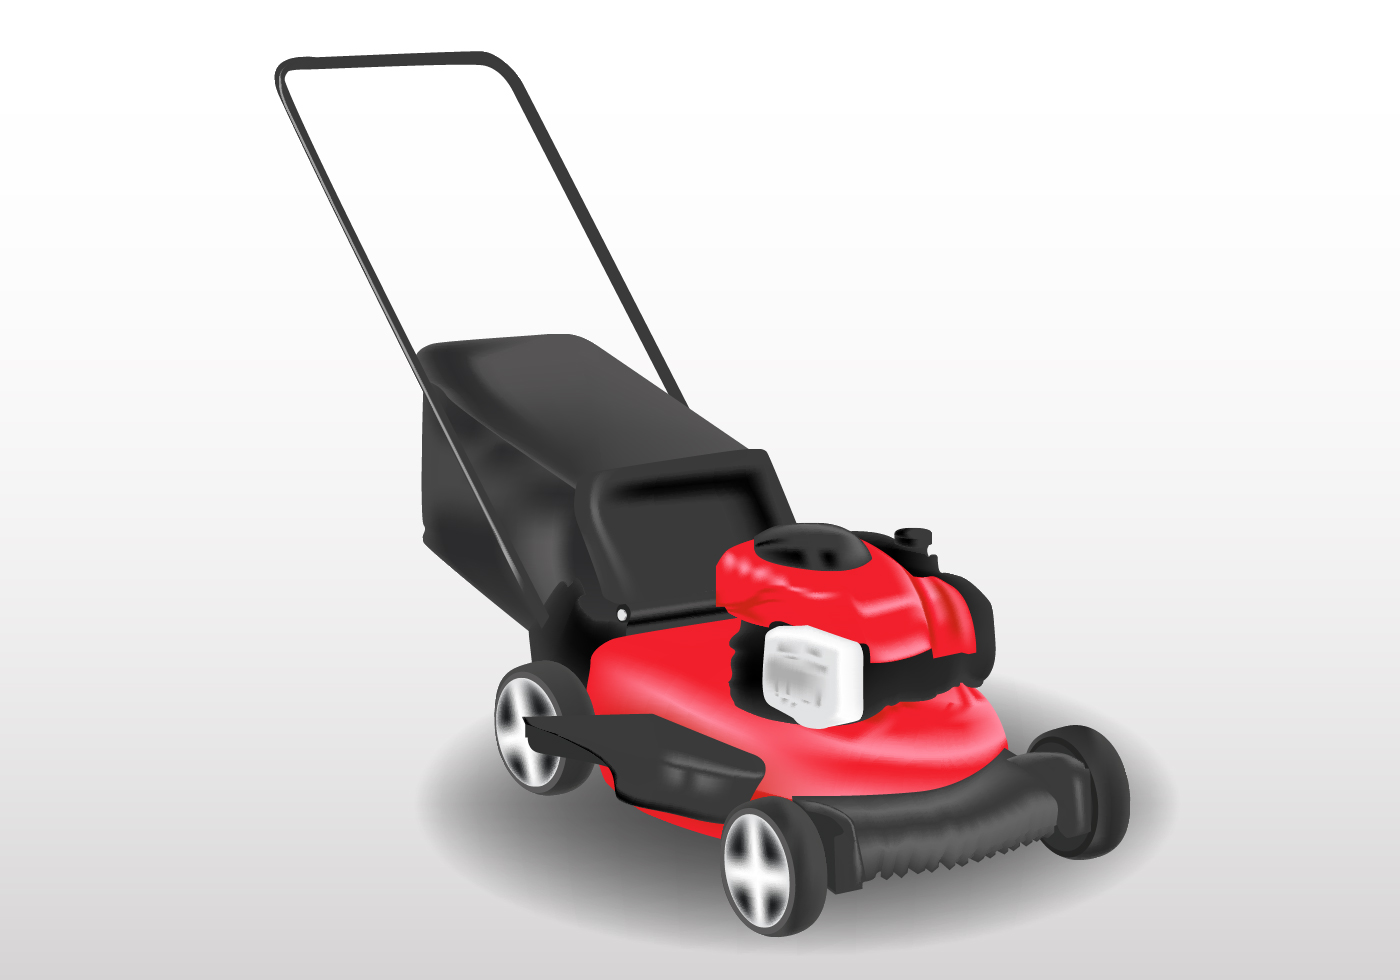 lawn mower vector - photo #12